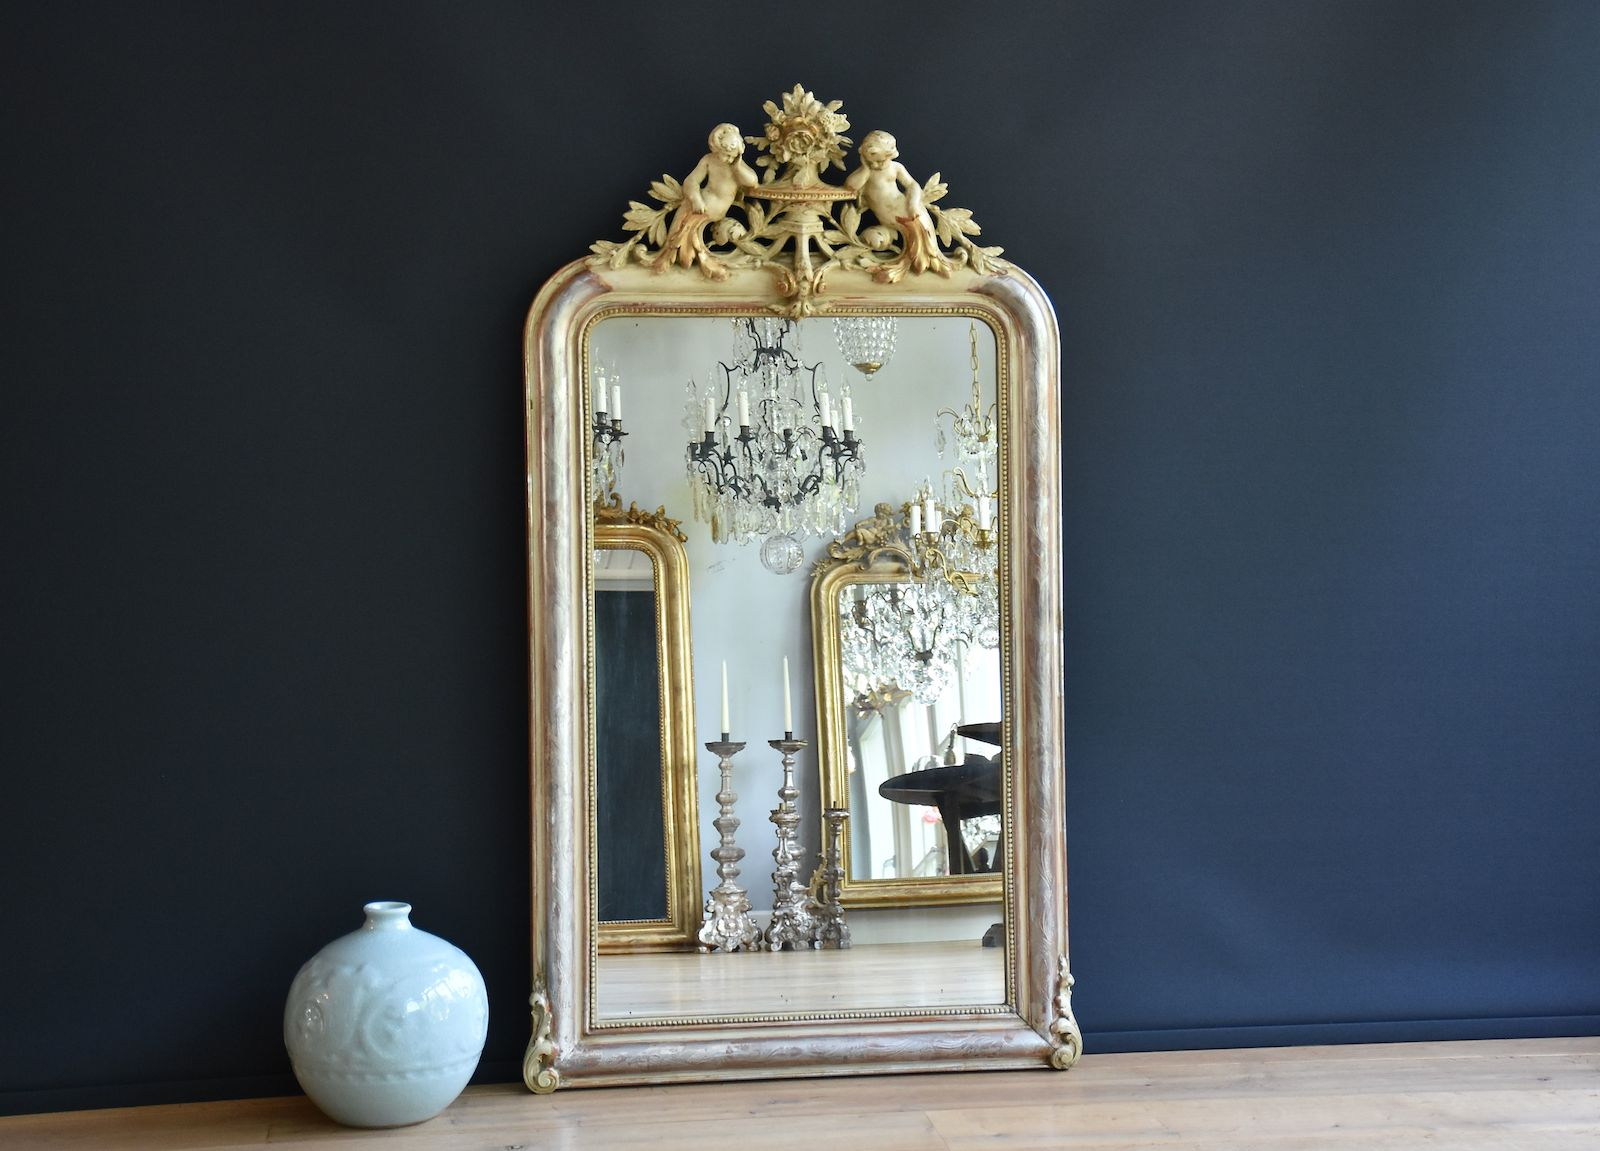 Antique French mirror with crest